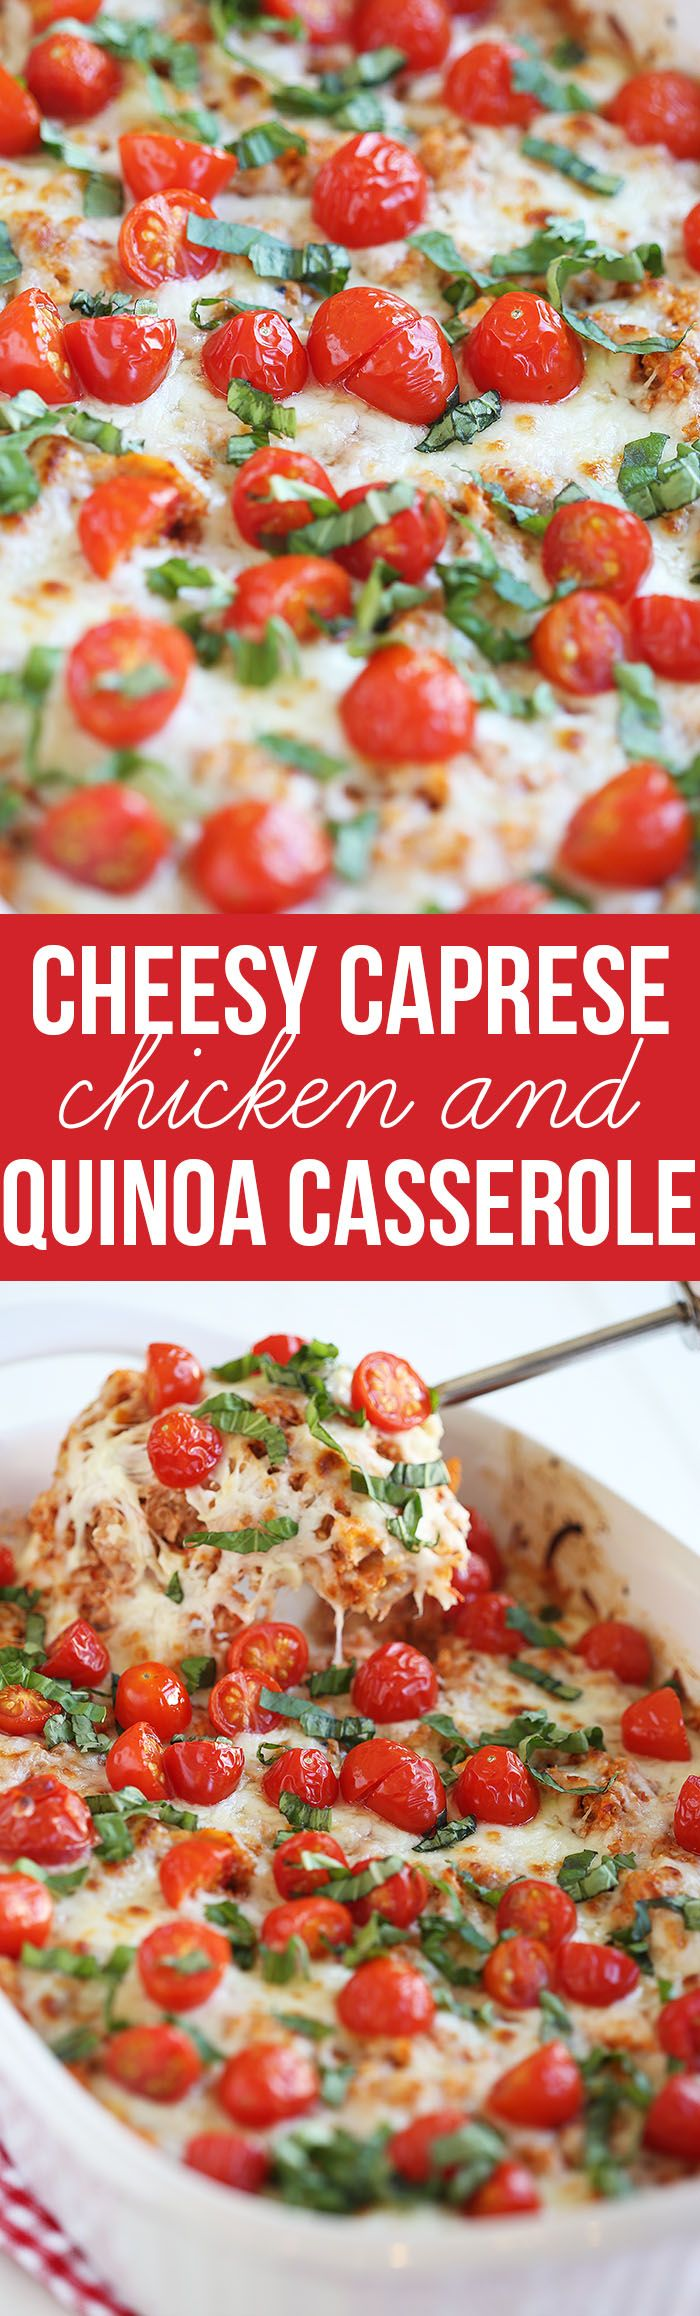 This Cheesy Caprese Chicken and Quinoa Casserole is the perfect healthy weeknight meal that is hearty, full of flavor and sure to please your entire family!